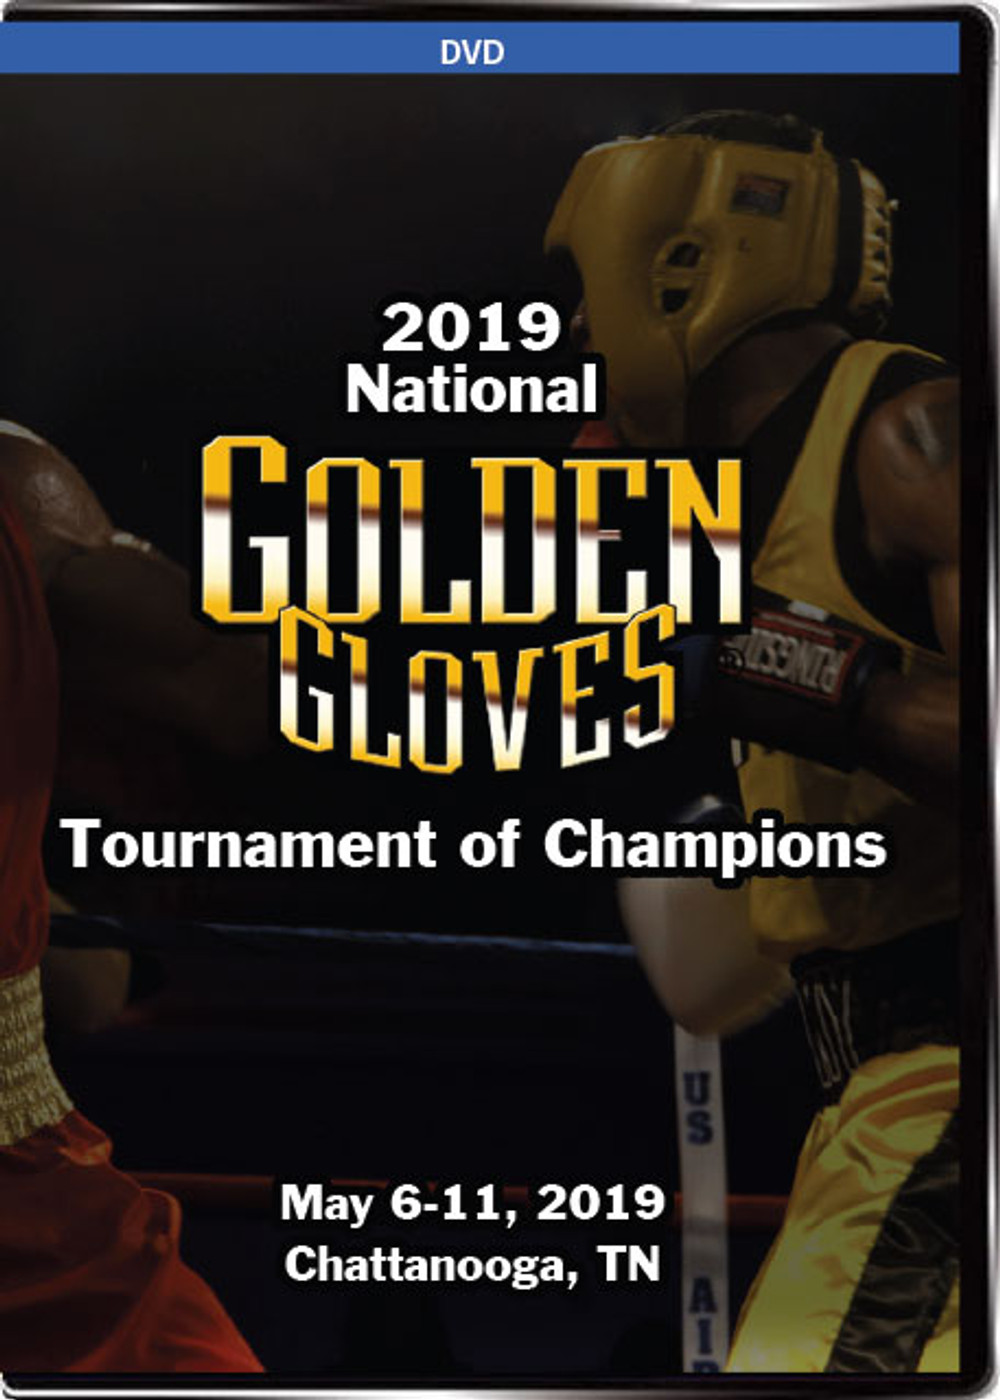 2019 National Golden Gloves Tournament of Champions